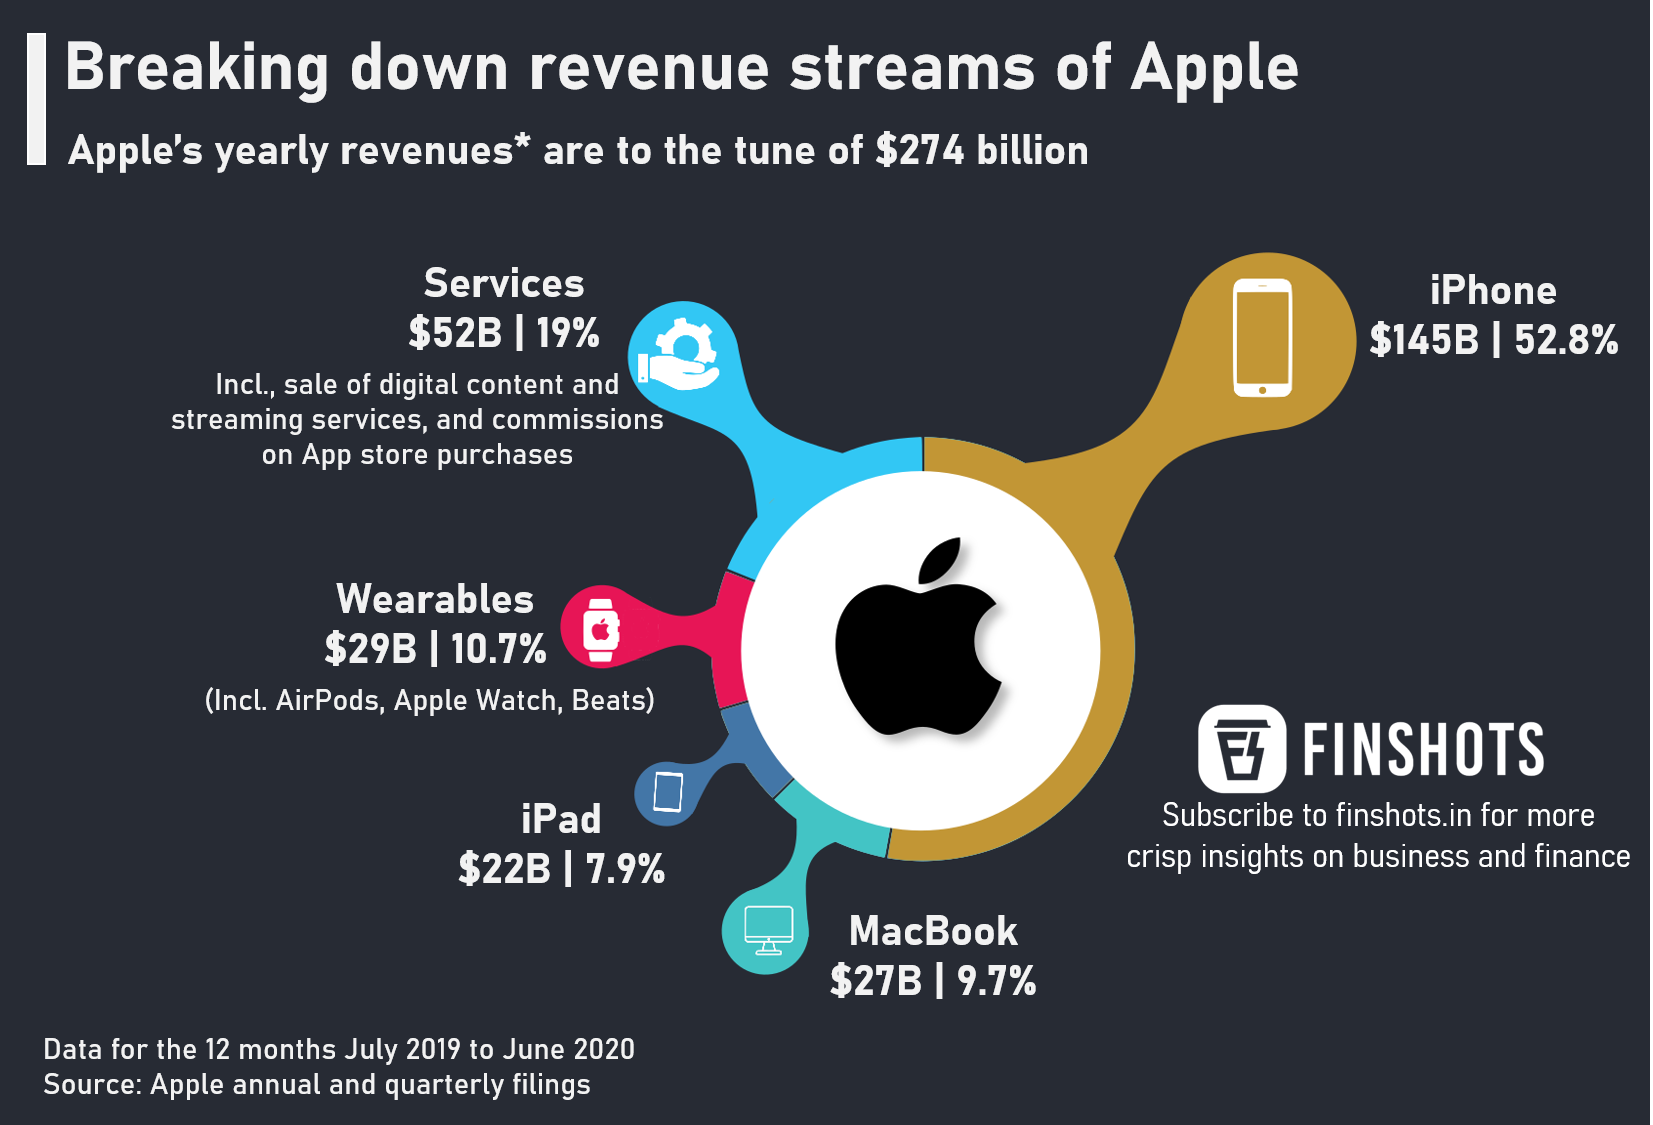 Apple's market cap crosses $2 trillion